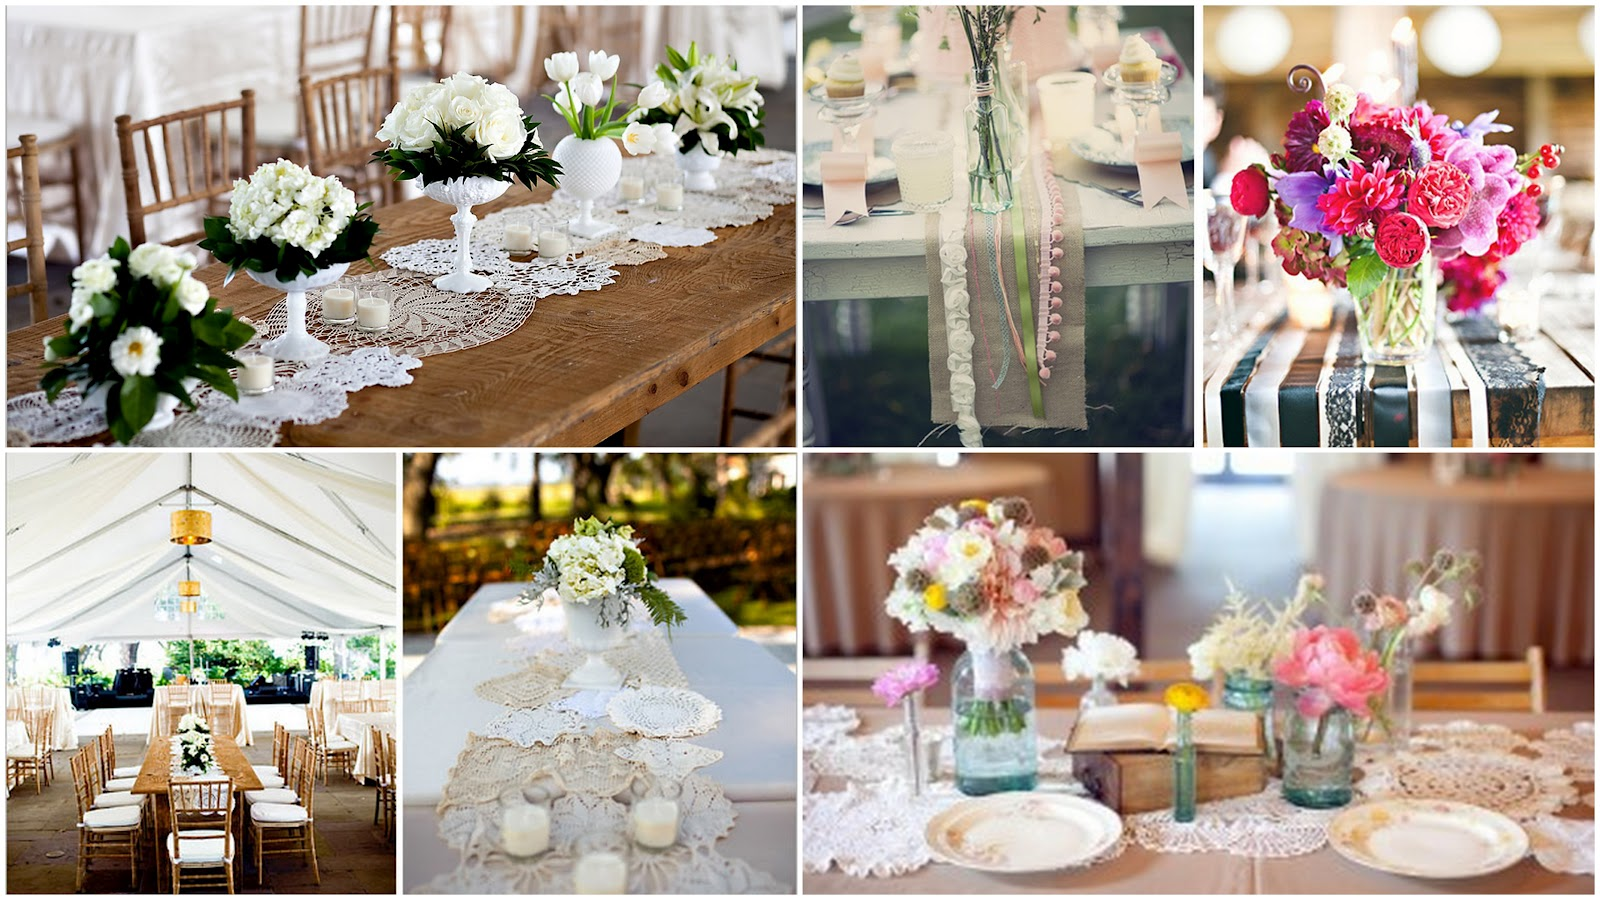 Charmant Adding A Table Runner Gives Another Dimension To Your Tablescape And Also  Brings Color And Texture In An Affordable Way. Create Groupings Of  Centerpieces ...